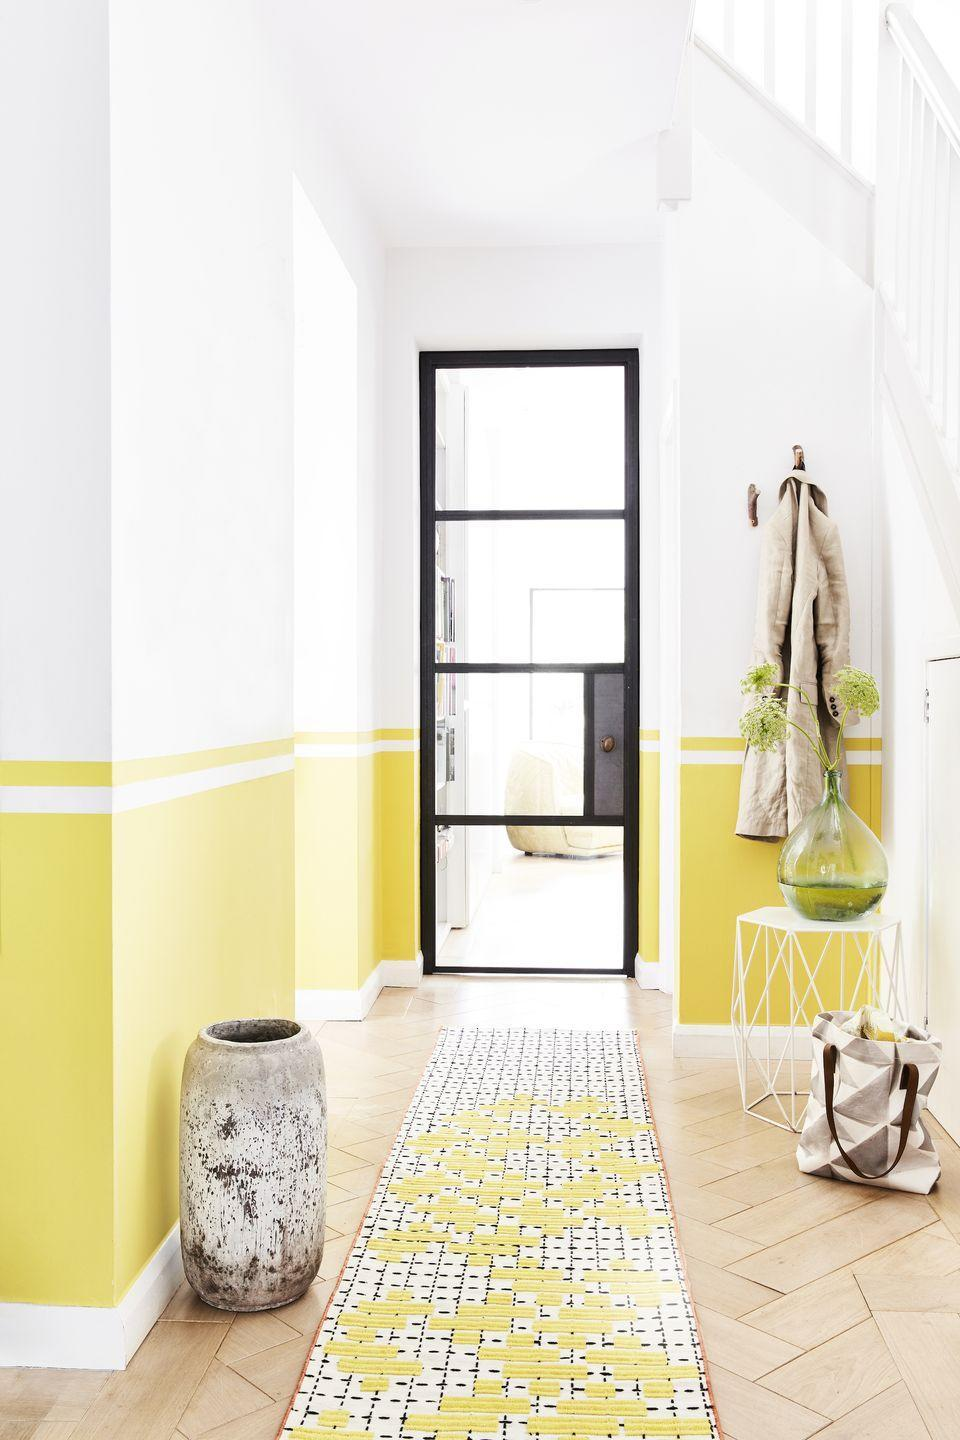 """<p>Neutrals will obviously make your space feel brighter, but don't be afraid of punchy colours. Setting the tone for the rest of the house, some of the Insta-worthy hues to dip your paintbrush into include forest greens, impactful yellow and dark navy blue. <br></p><p>'Paint is the backdrop to all <a href=""""https://www.housebeautiful.com/uk/decorate/a36517352/dated-home-decor/"""" rel=""""nofollow noopener"""" target=""""_blank"""" data-ylk=""""slk:interiors"""" class=""""link rapid-noclick-resp"""">interiors</a> and your personality can be stamped all over it,' adds David. 'Your hallway is the first point of entry. It should also give your guests an insight in to you who you are, and what your house and interior says about you.'</p><p>Walls in Ammonite estate emulsion, £49.50/2.5L, <a href=""""https://go.redirectingat.com?id=127X1599956&url=https%3A%2F%2Fwww.farrow-ball.com%2F&sref=https%3A%2F%2Fwww.housebeautiful.com%2Fuk%2Fdecorate%2Fhallway%2Fg36617179%2Finstagrammable-hallway-ideas%2F"""" rel=""""nofollow noopener"""" target=""""_blank"""" data-ylk=""""slk:Farrow & Ball"""" class=""""link rapid-noclick-resp"""">Farrow & Ball</a>; English Yellow wall paint, £41.95/2.5L, <a href=""""https://www.anniesloan.com/"""" rel=""""nofollow noopener"""" target=""""_blank"""" data-ylk=""""slk:Annie Sloan"""" class=""""link rapid-noclick-resp"""">Annie Sloan</a></p>"""